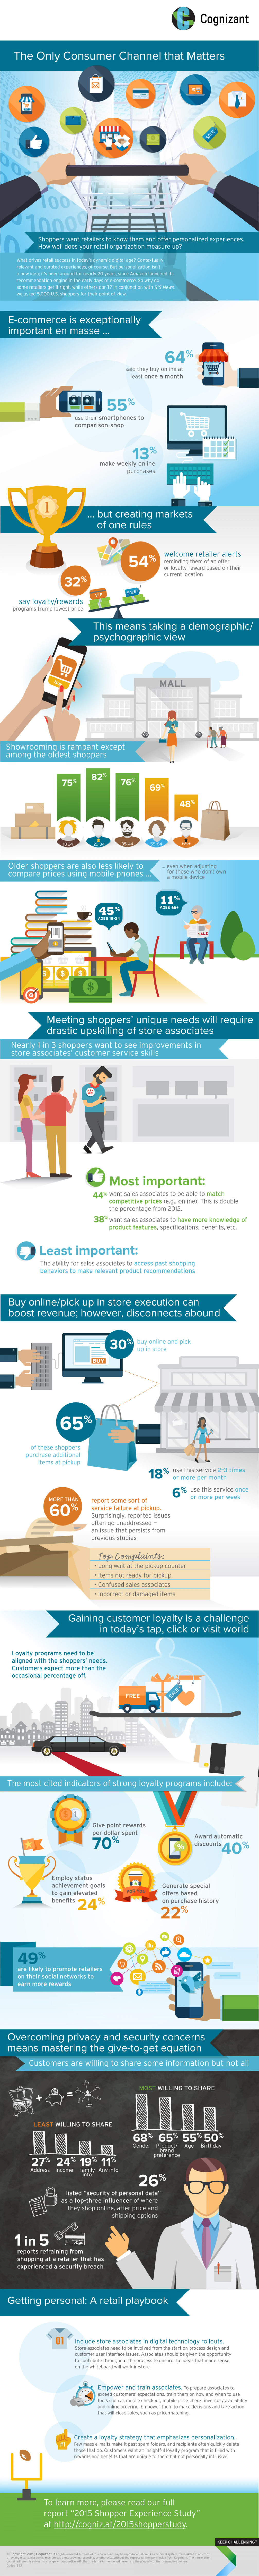 Personalizing the Store Experience Infographic